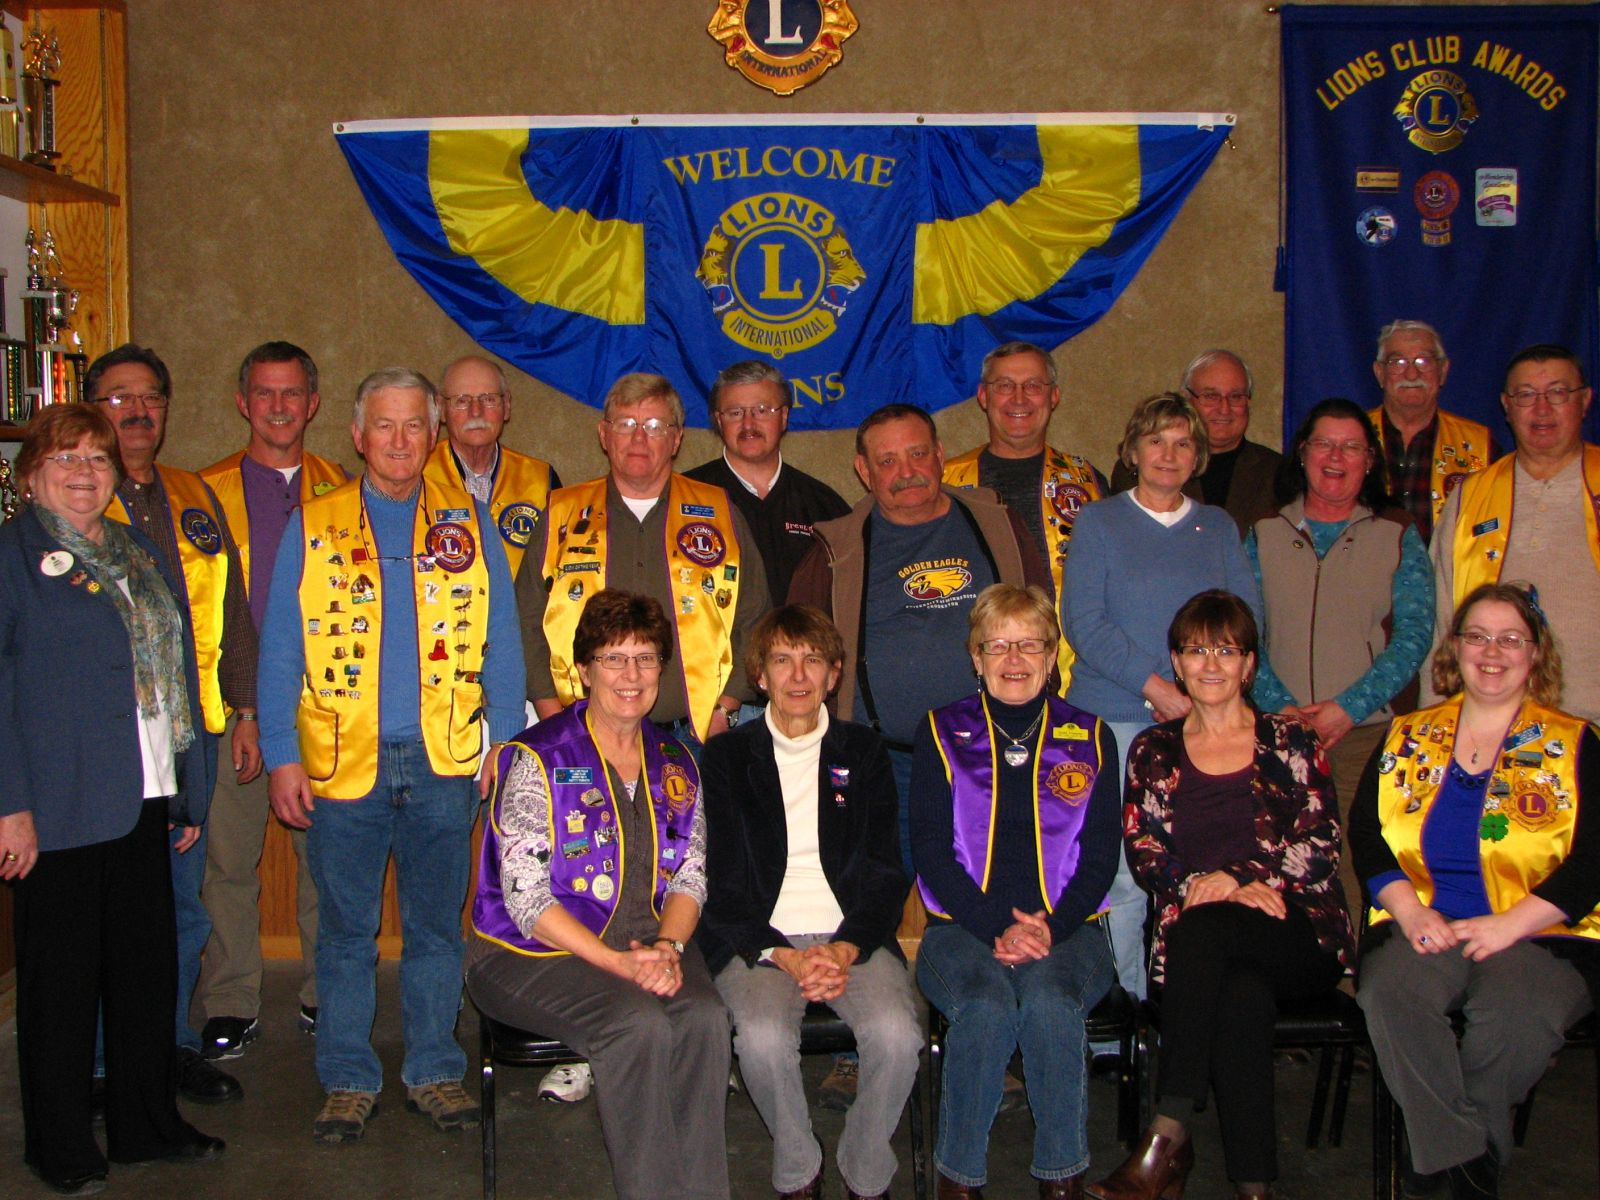 The Red Lake Falls Lions Club, January 2012